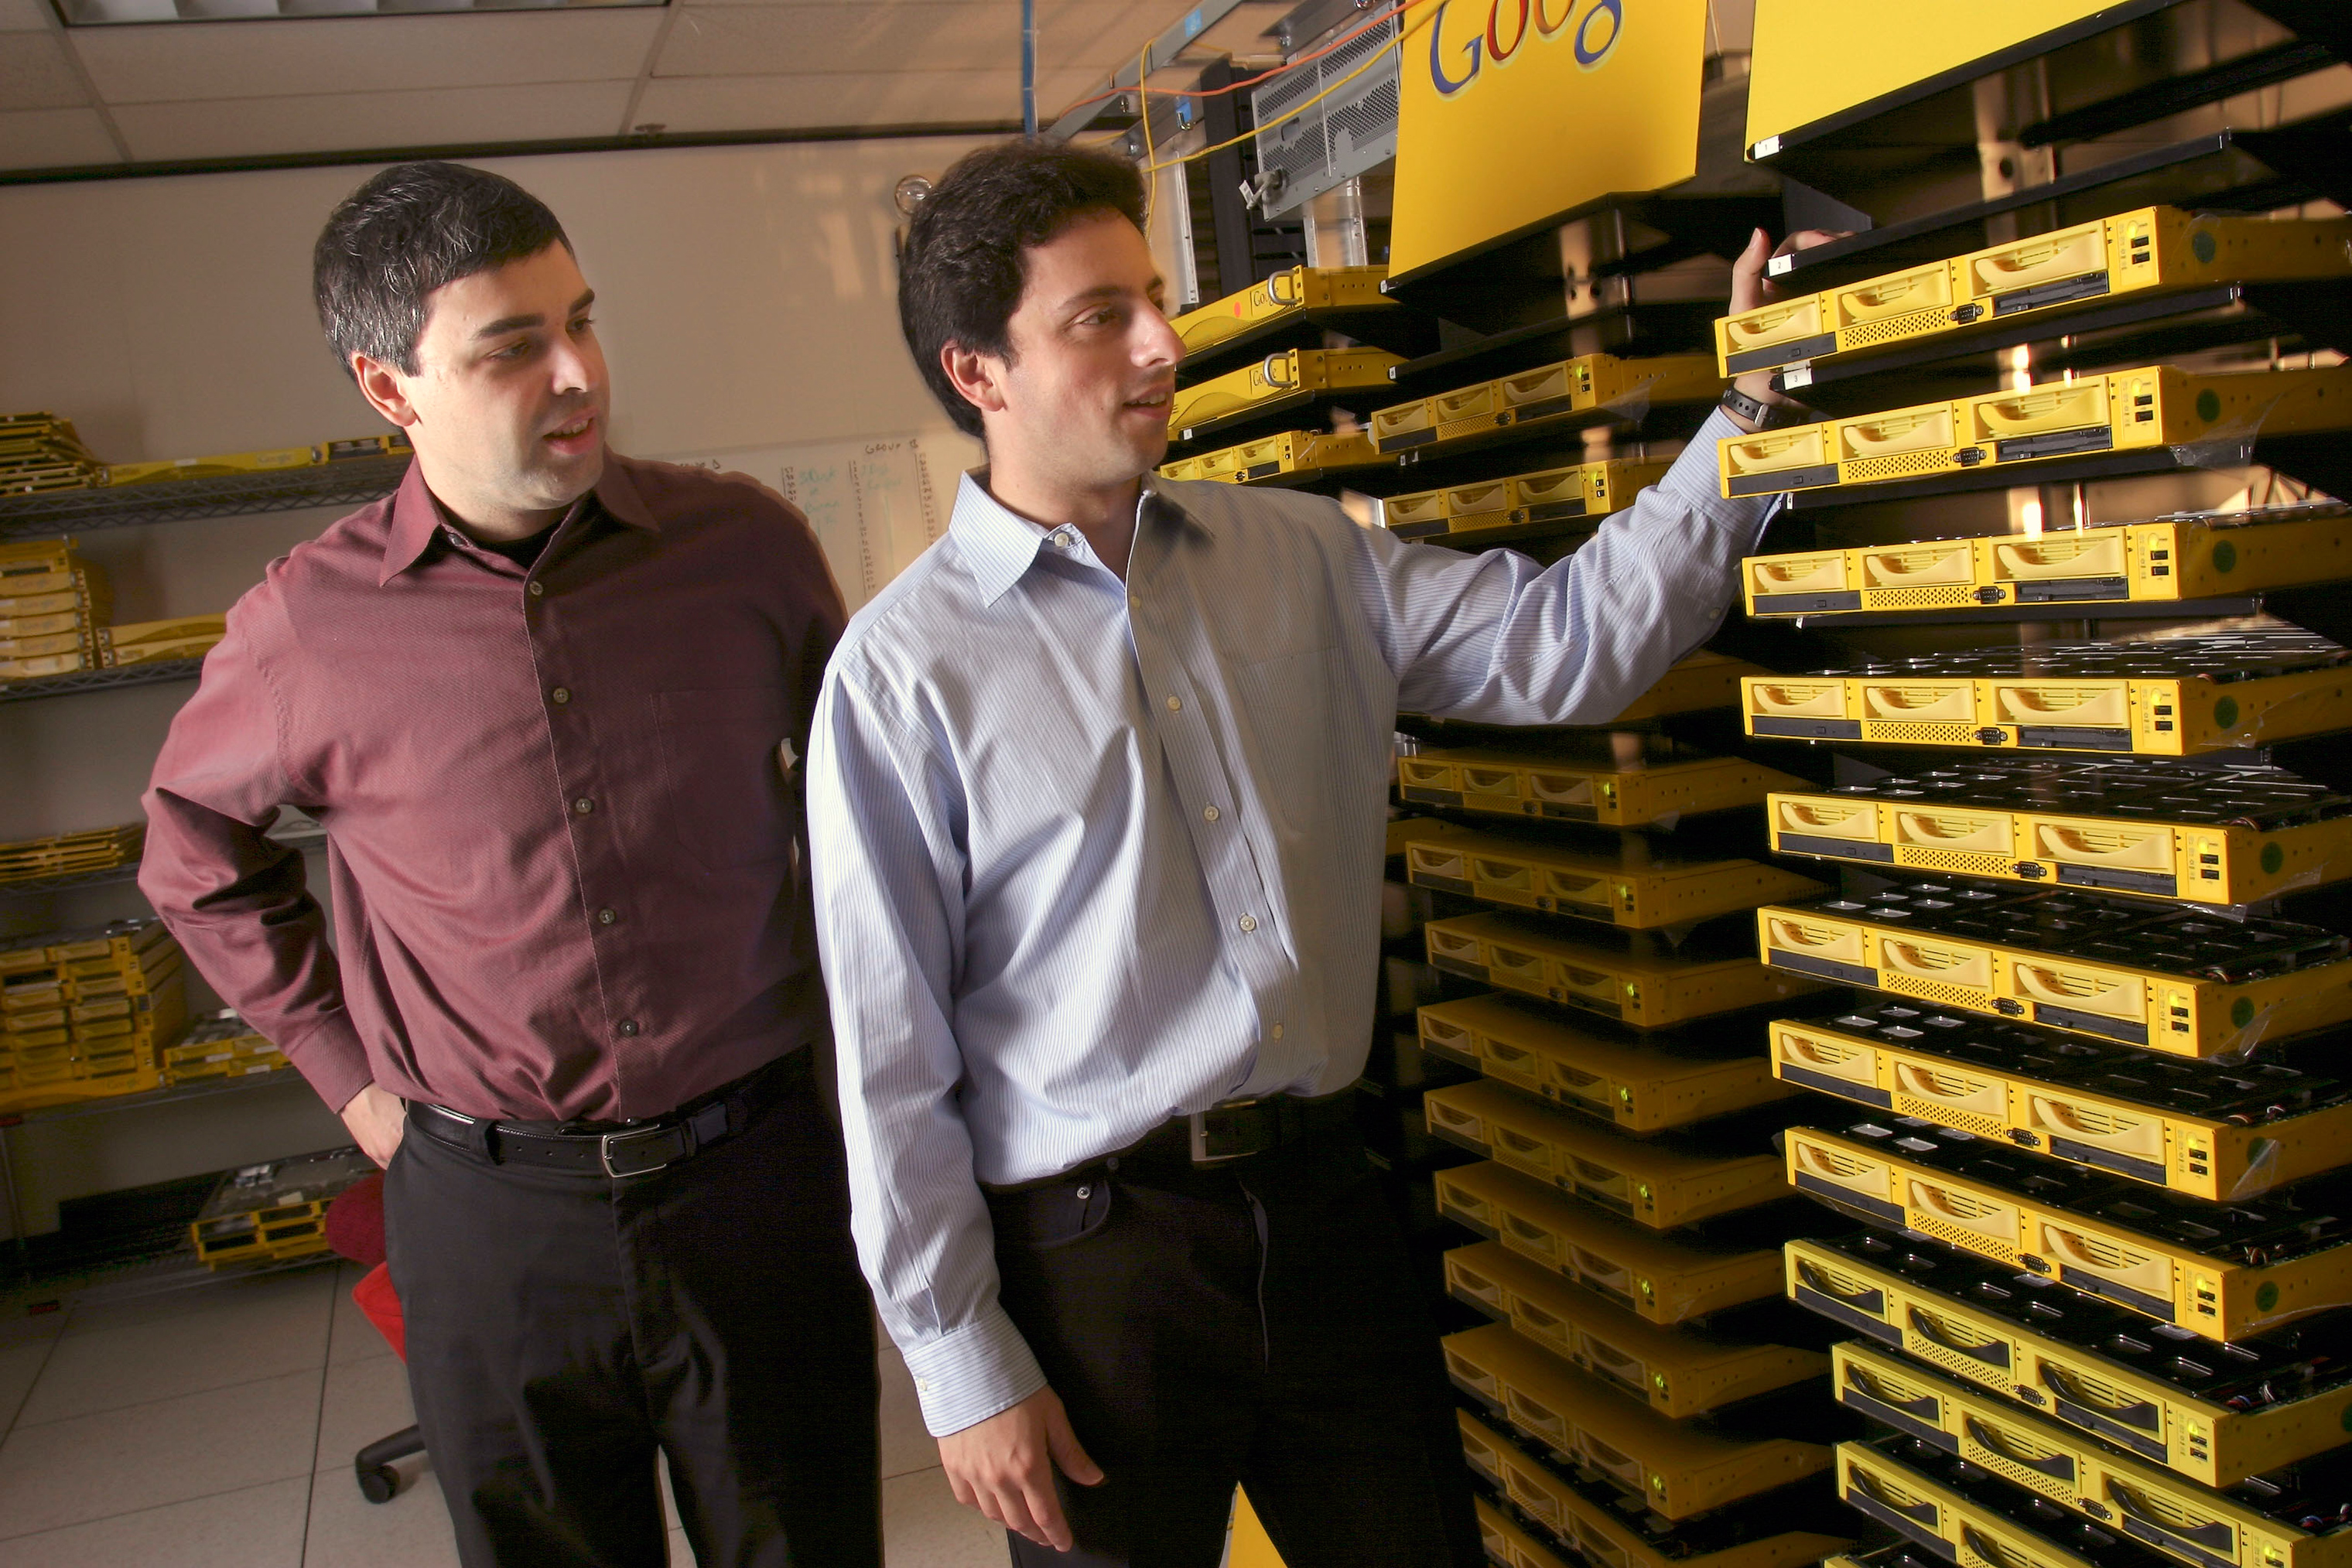 Google co-founders Larry Page, left, and Sergey Brin, at their campus headquarters in Mountain View, Calif., 2003.